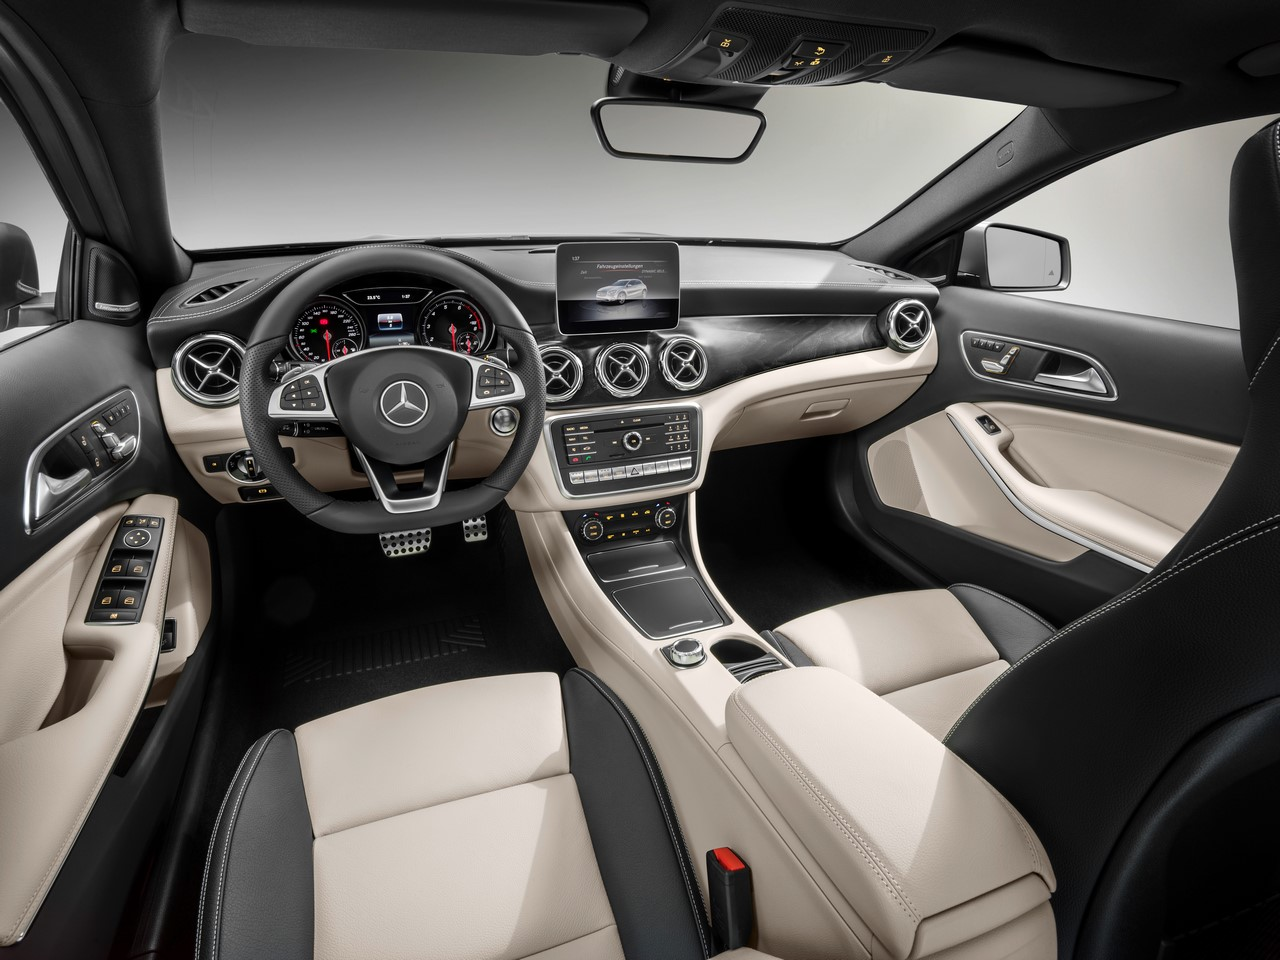 2017 Mercedes GLA Class Revealed at Detroit Auto Show Interior Dashboard Profile`